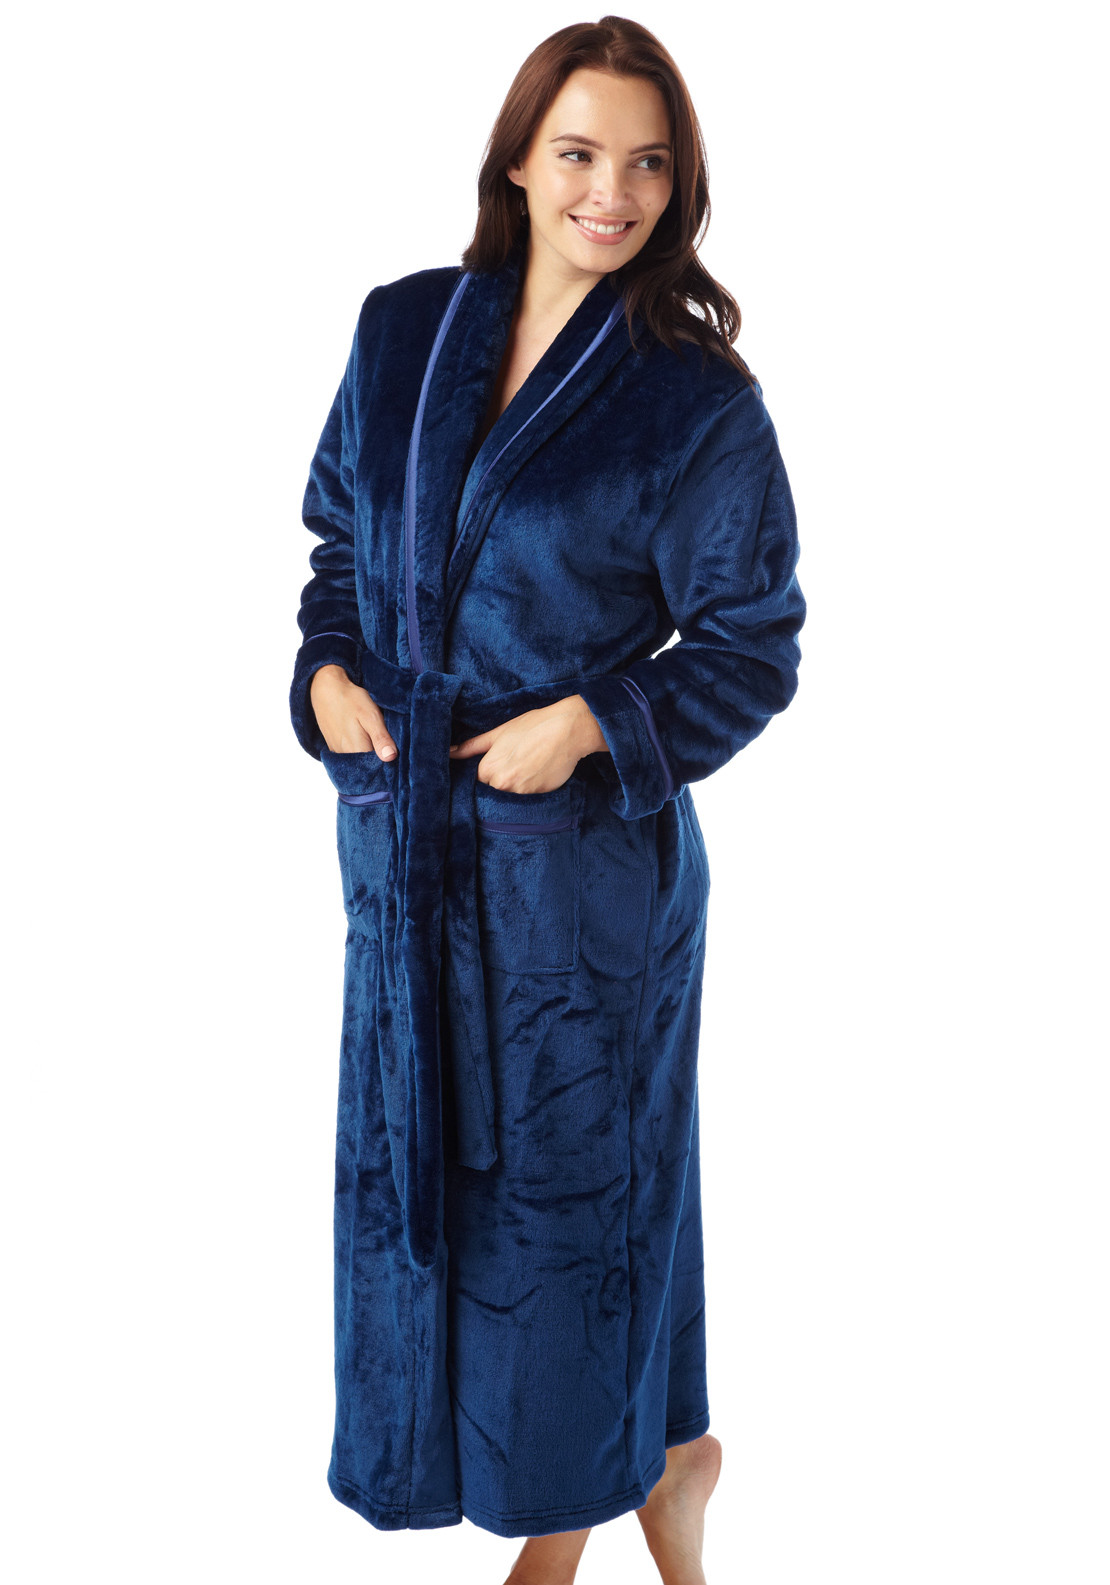 Indigo Sky Satin Trim Terry Dressing Gown, Navy